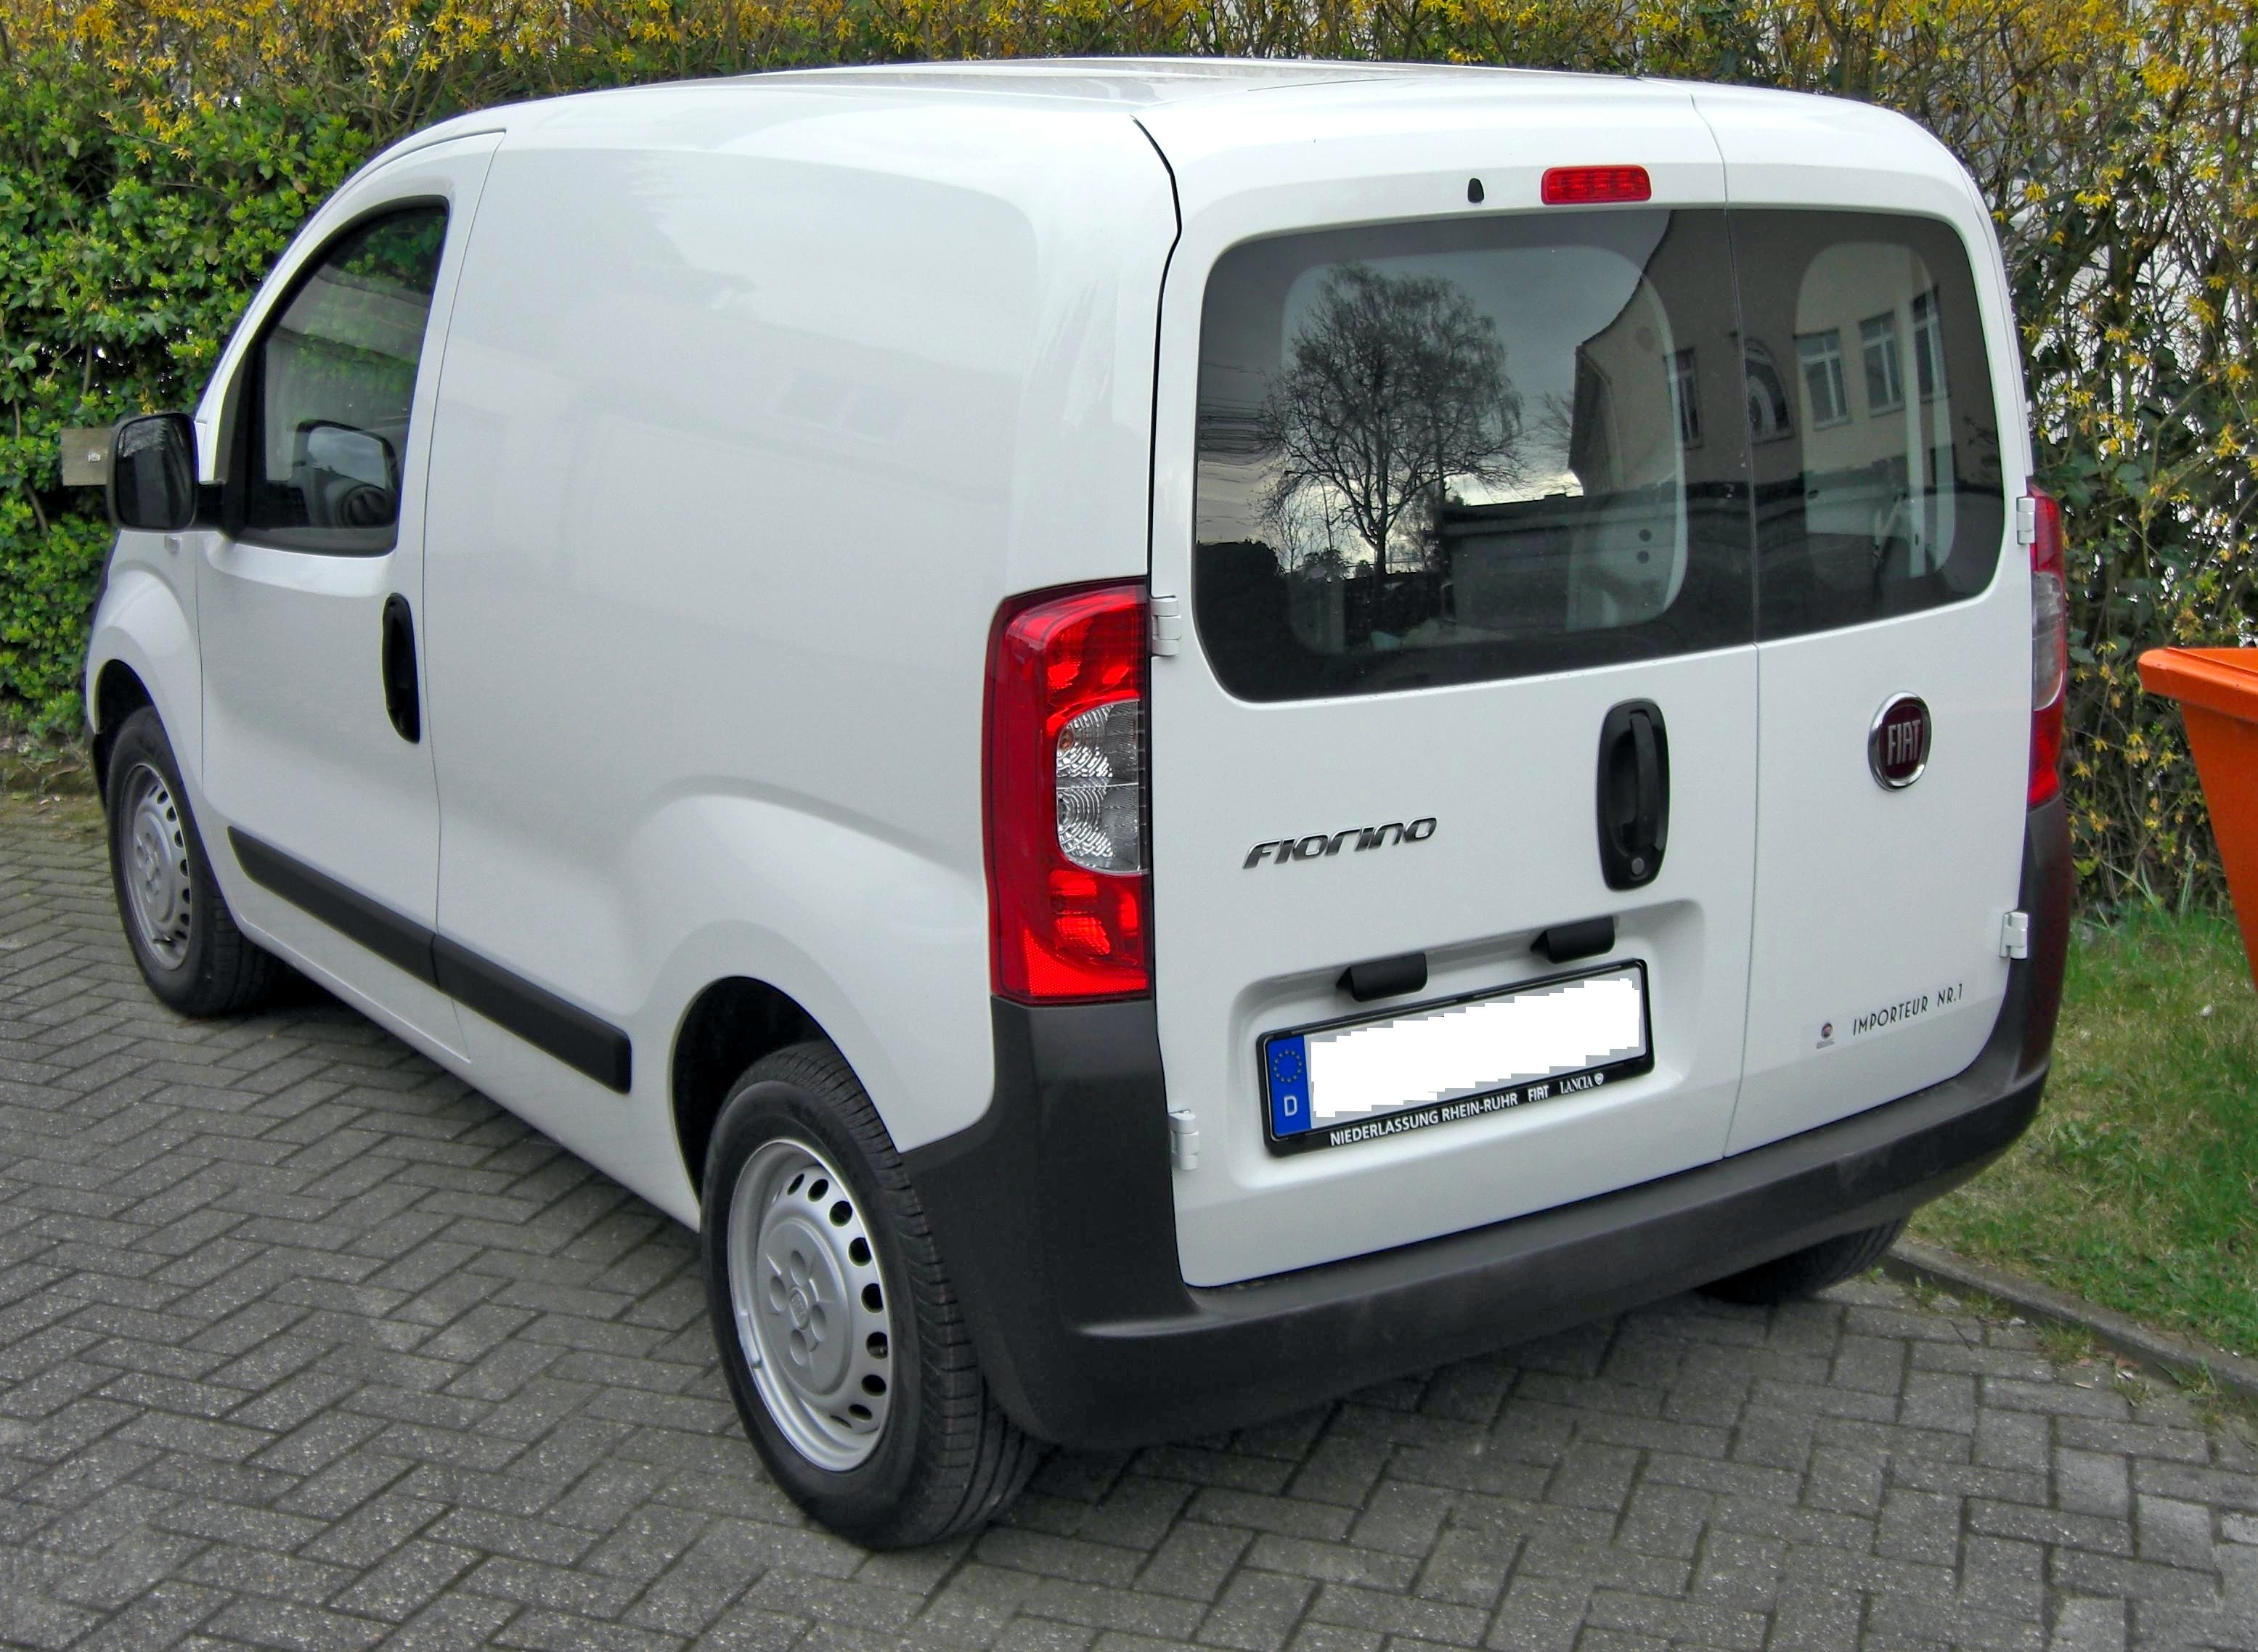 Fiat Fiorino 2007 photo - 1